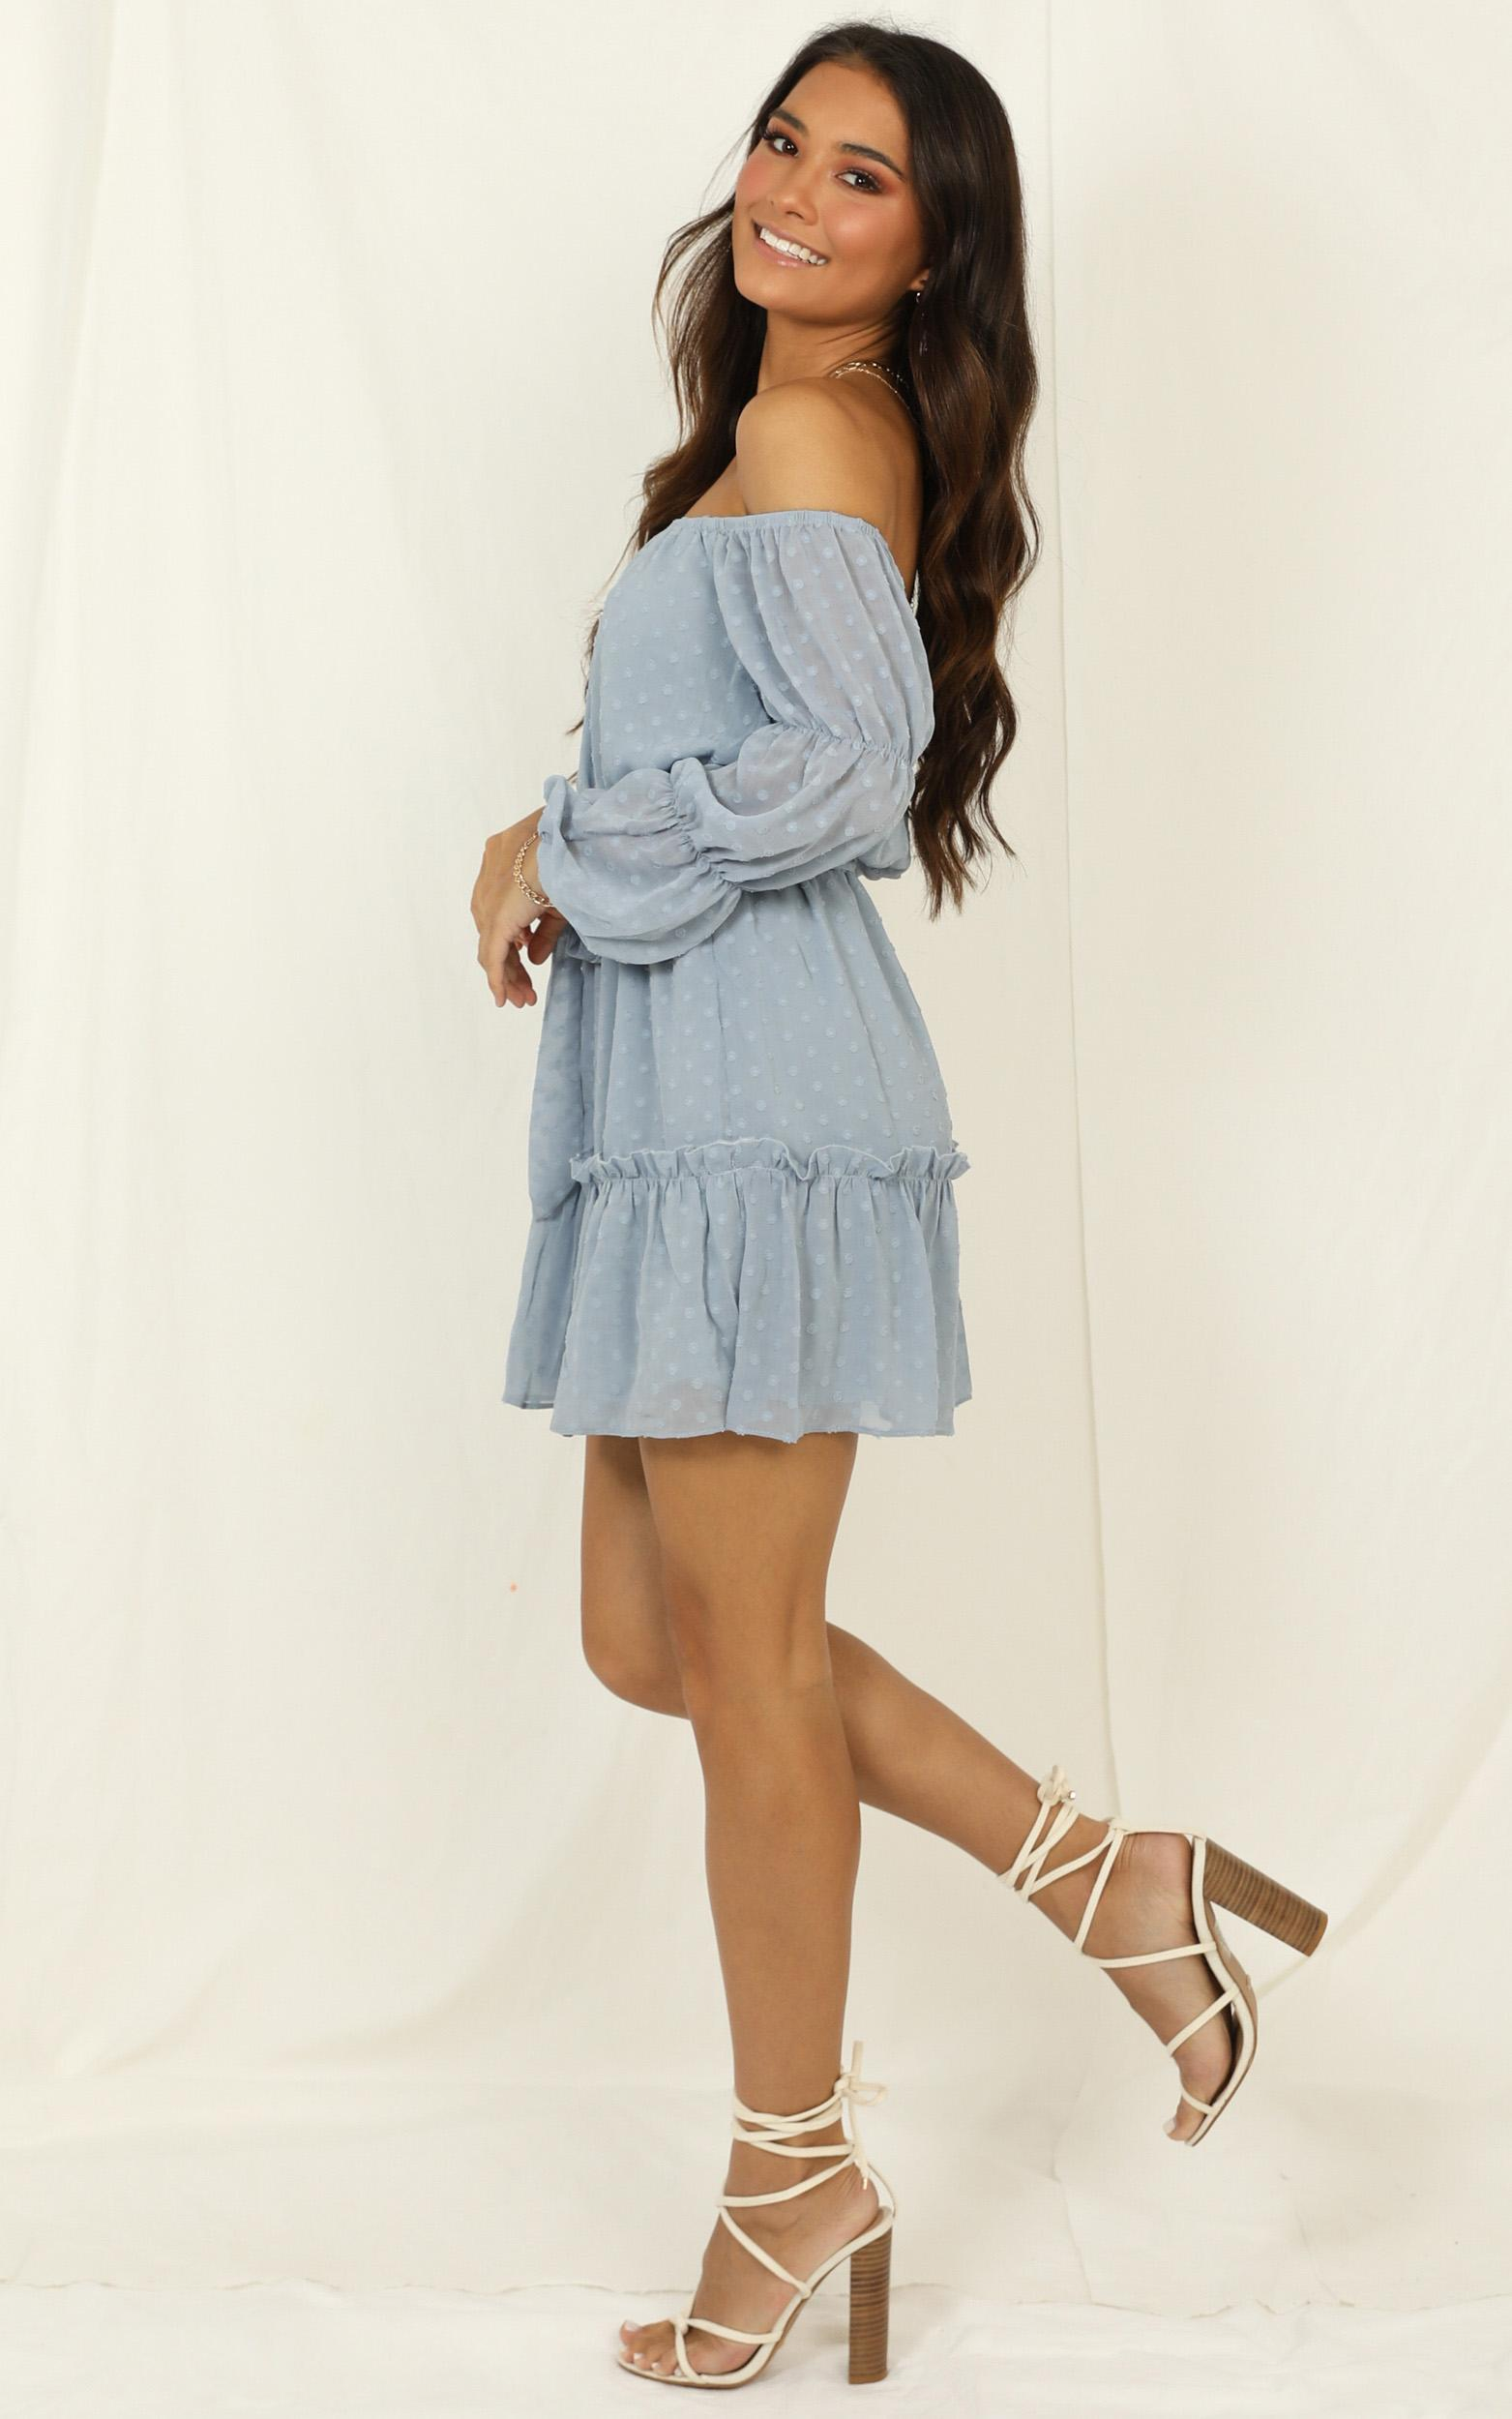 Party Life Dress In light blue - 20 (XXXXL), Blue, hi-res image number null